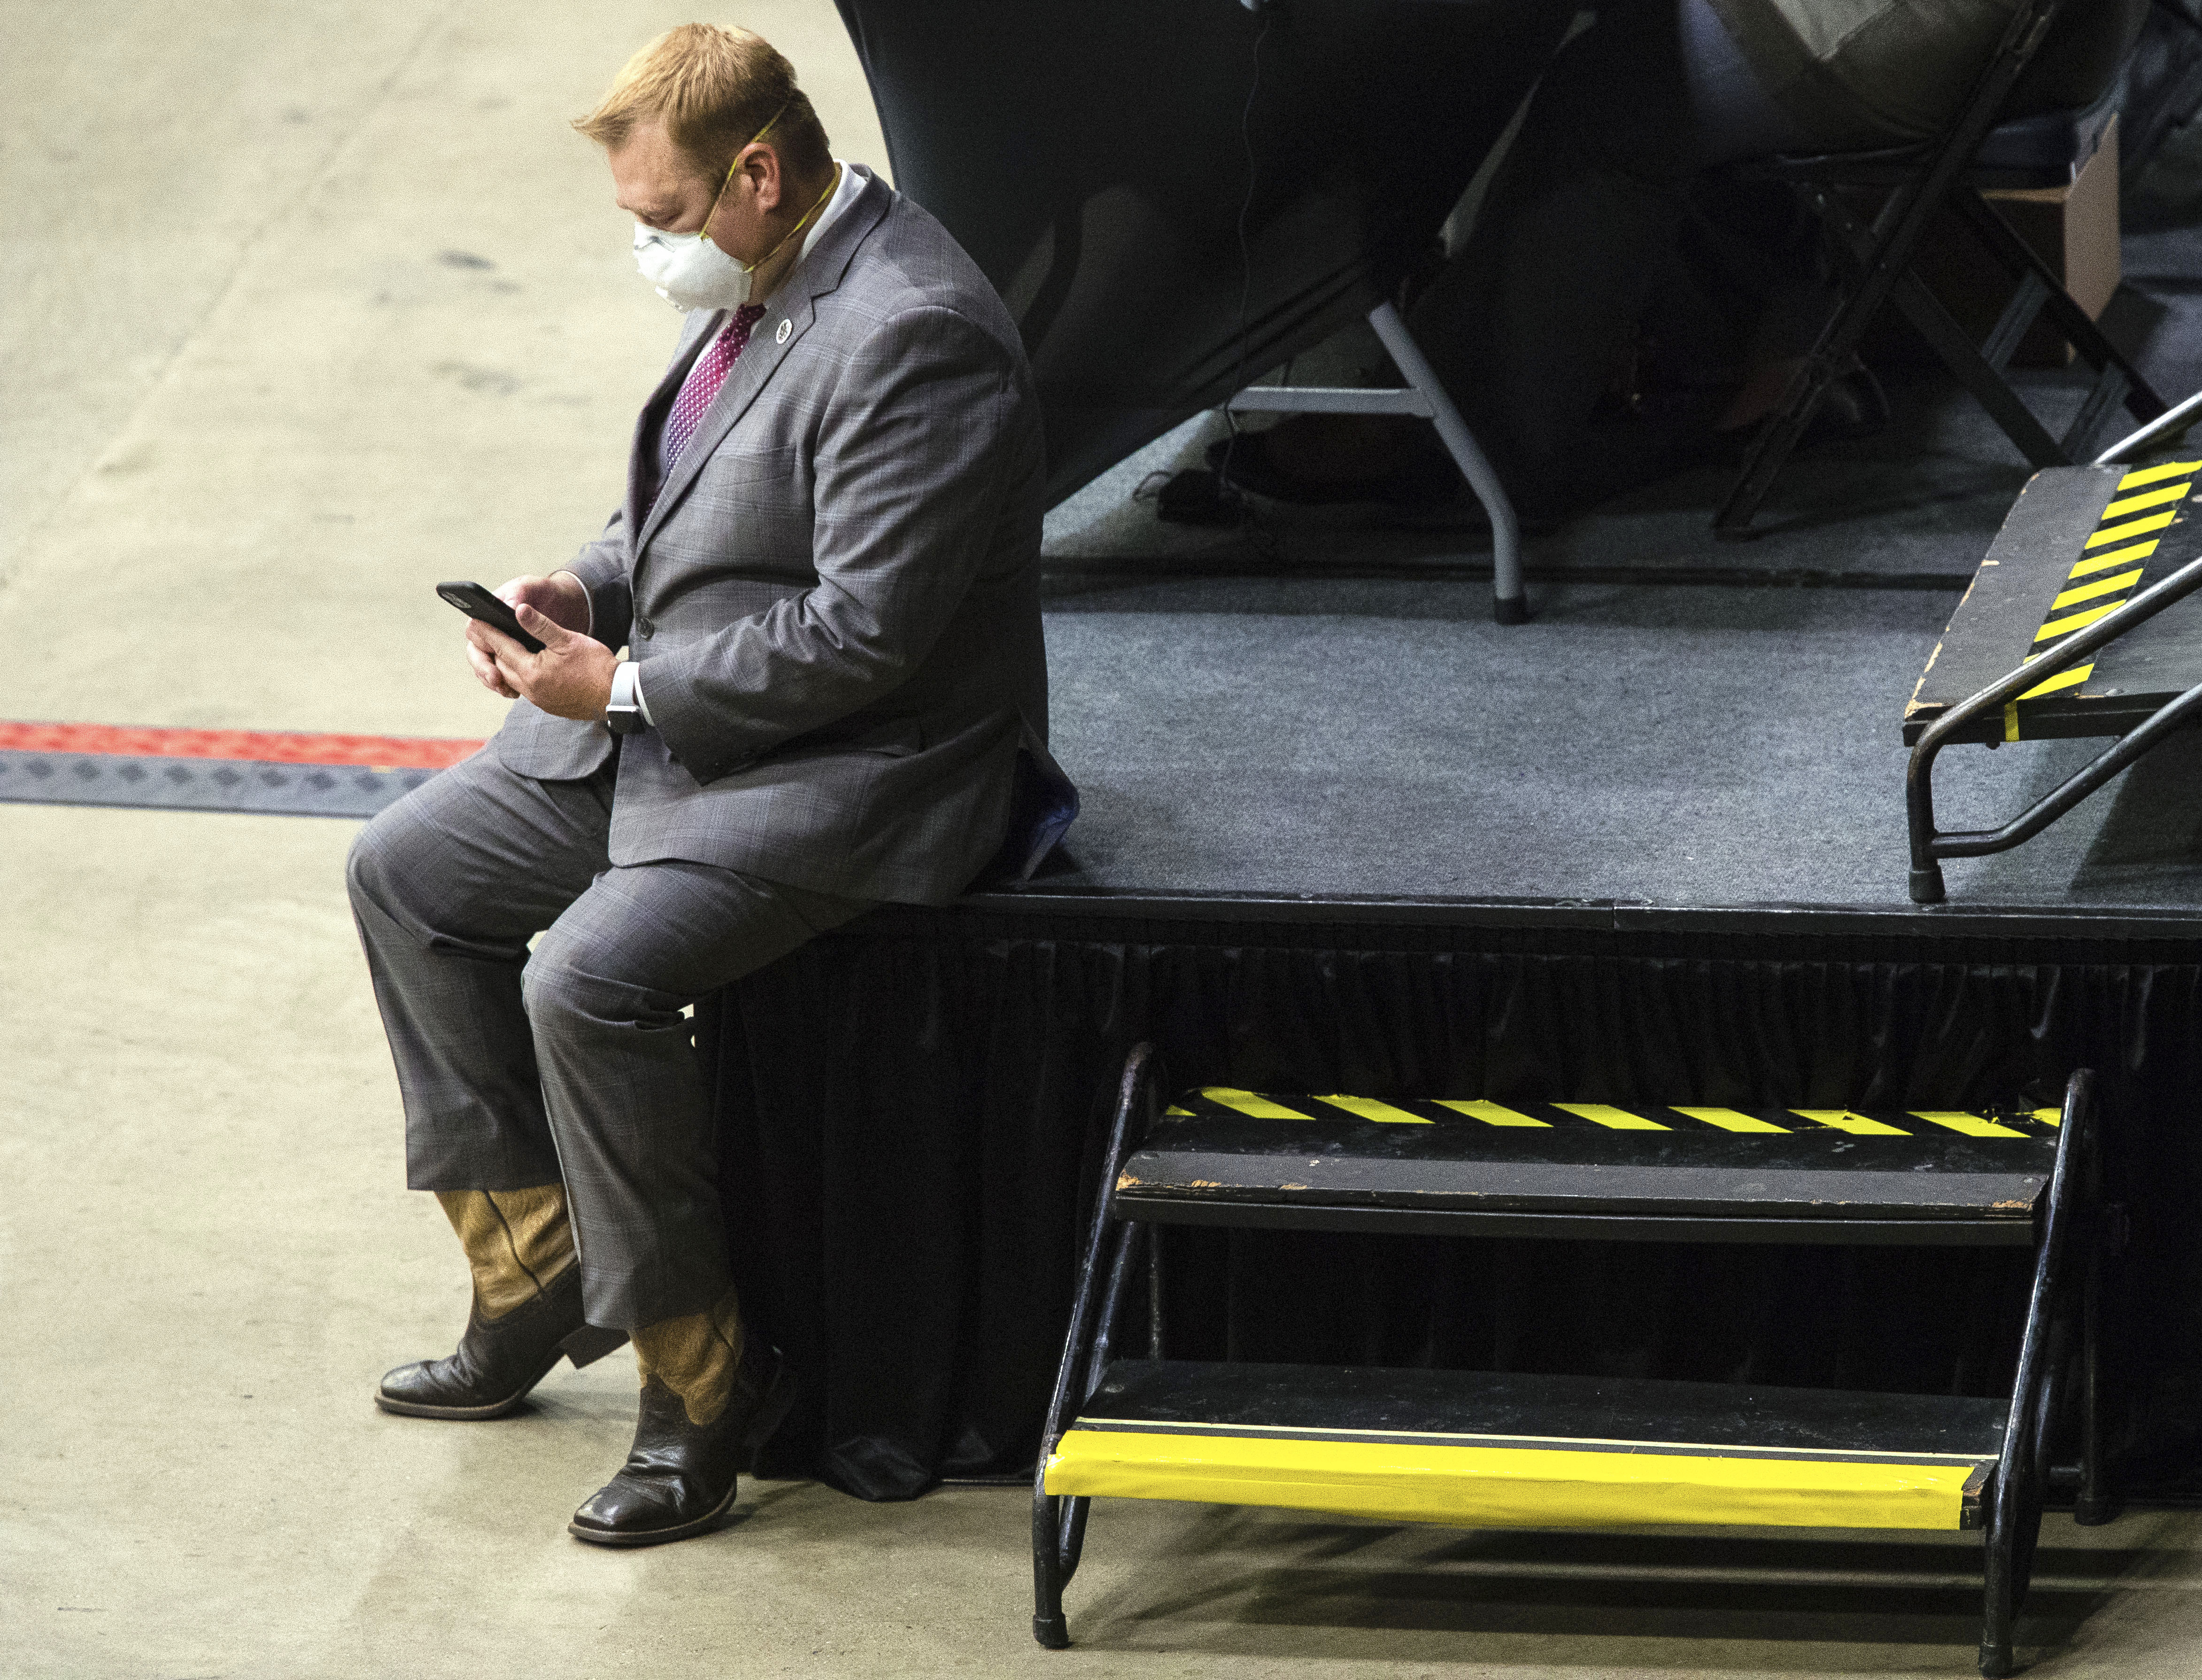 State Rep. Allen Skillicorn, R-East Dundee, looks at his phone during debate last week at the Bank of Springfield Center in Springfield.